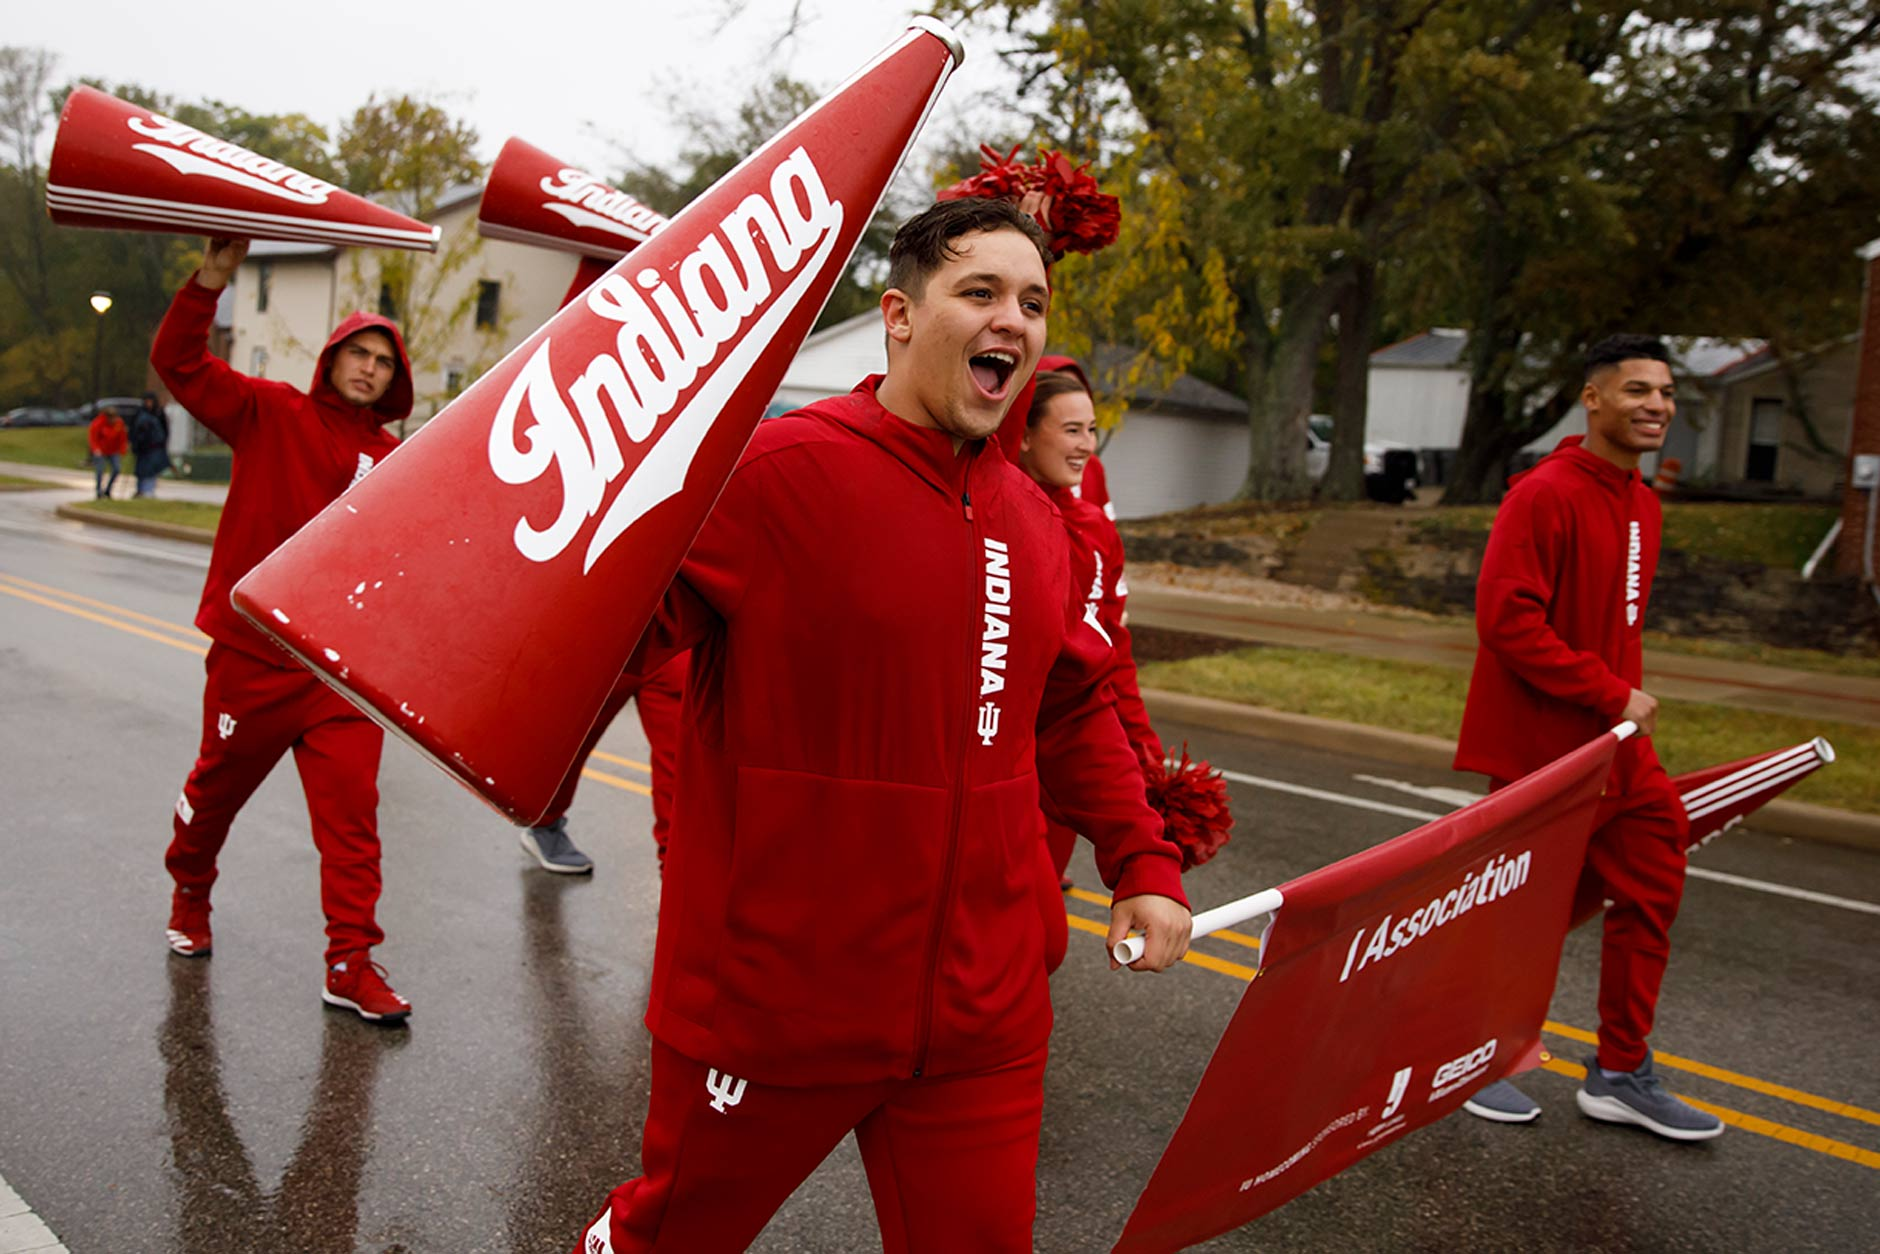 Indiana University cheerleaders walk in the IU Bloomington Homecoming Parade on Friday, Oct. 11, 2019. (James Brosher/Indiana University)